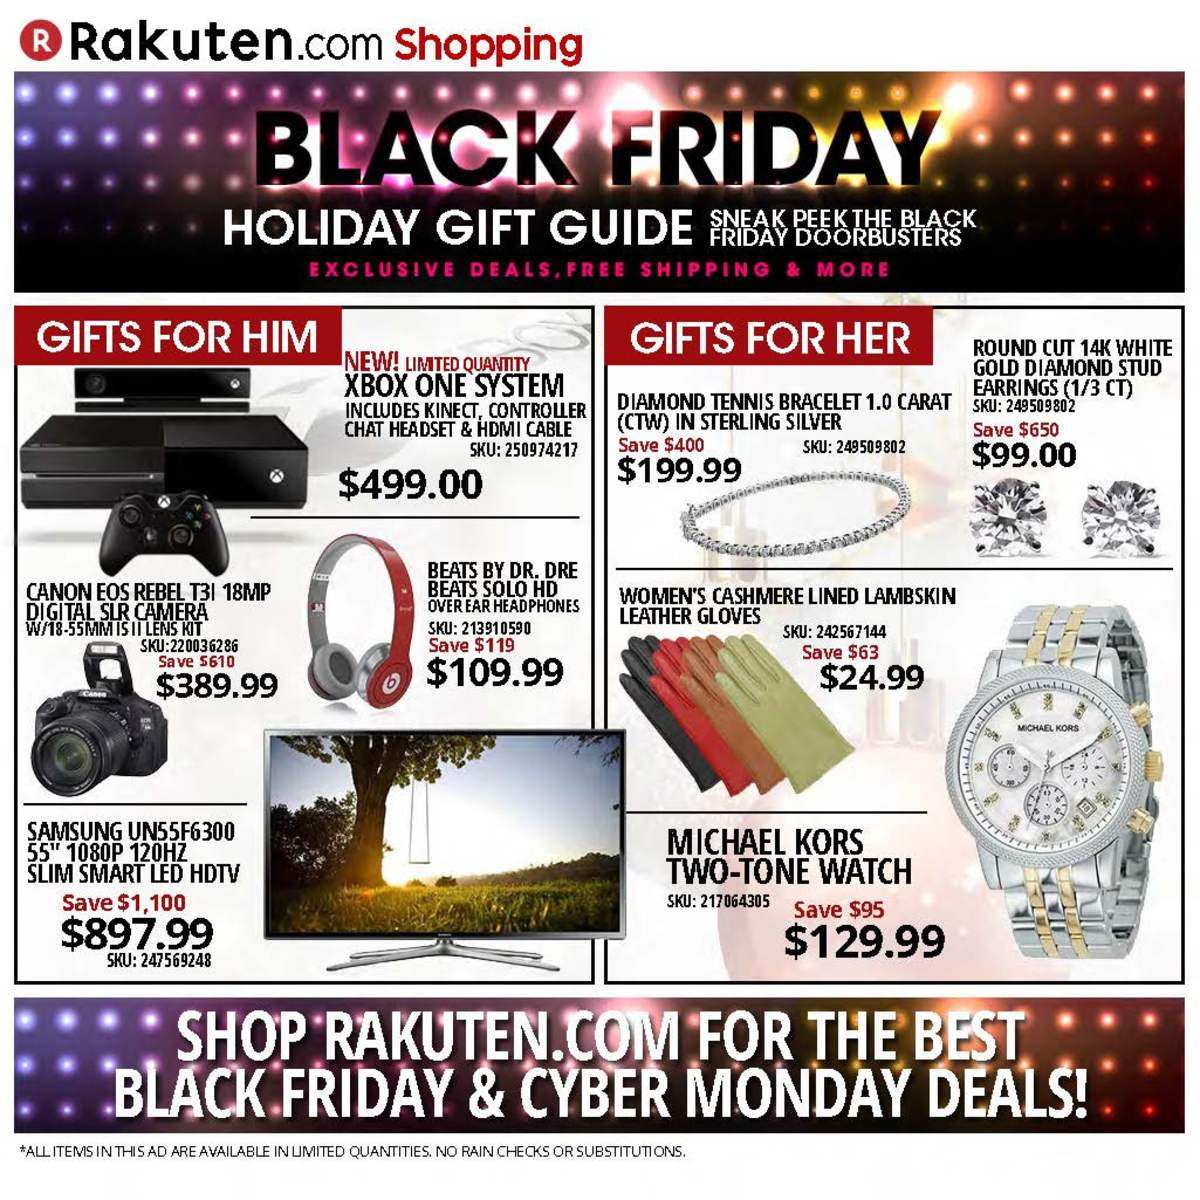 rakuten-black-friday-ad-2013_Page_1